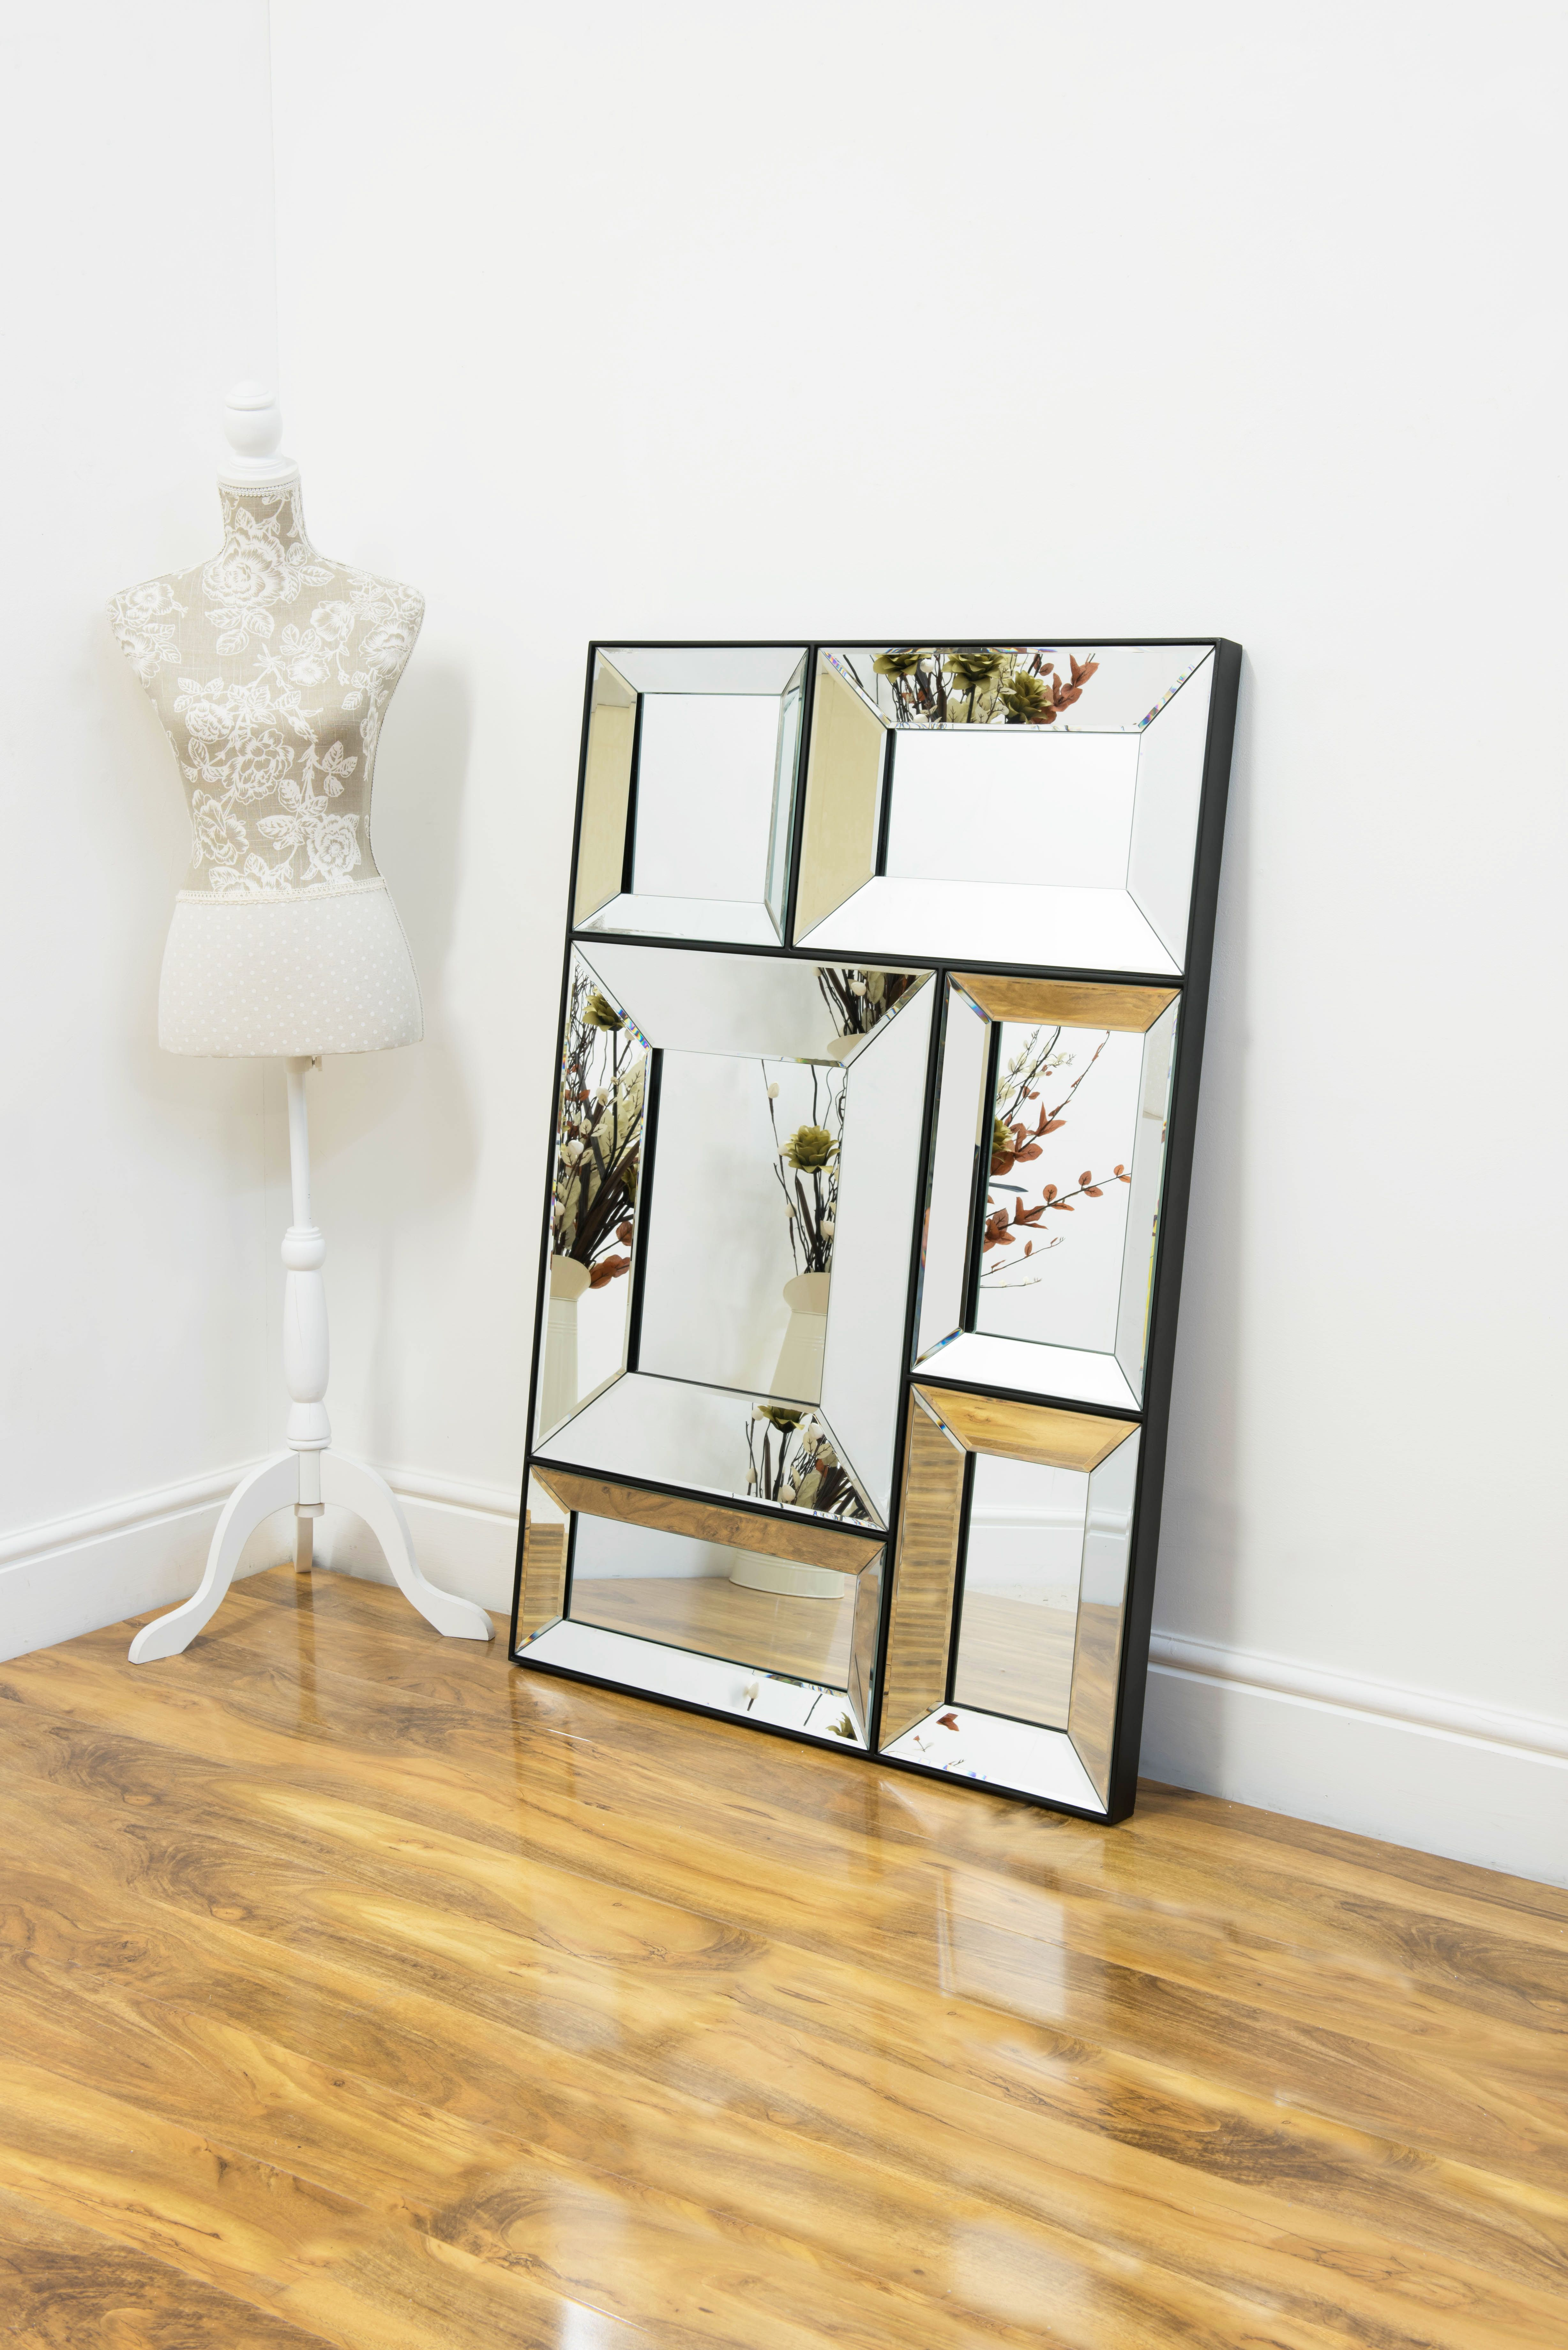 This mirror framed, chic, multi-mirrored frame will suit any ...